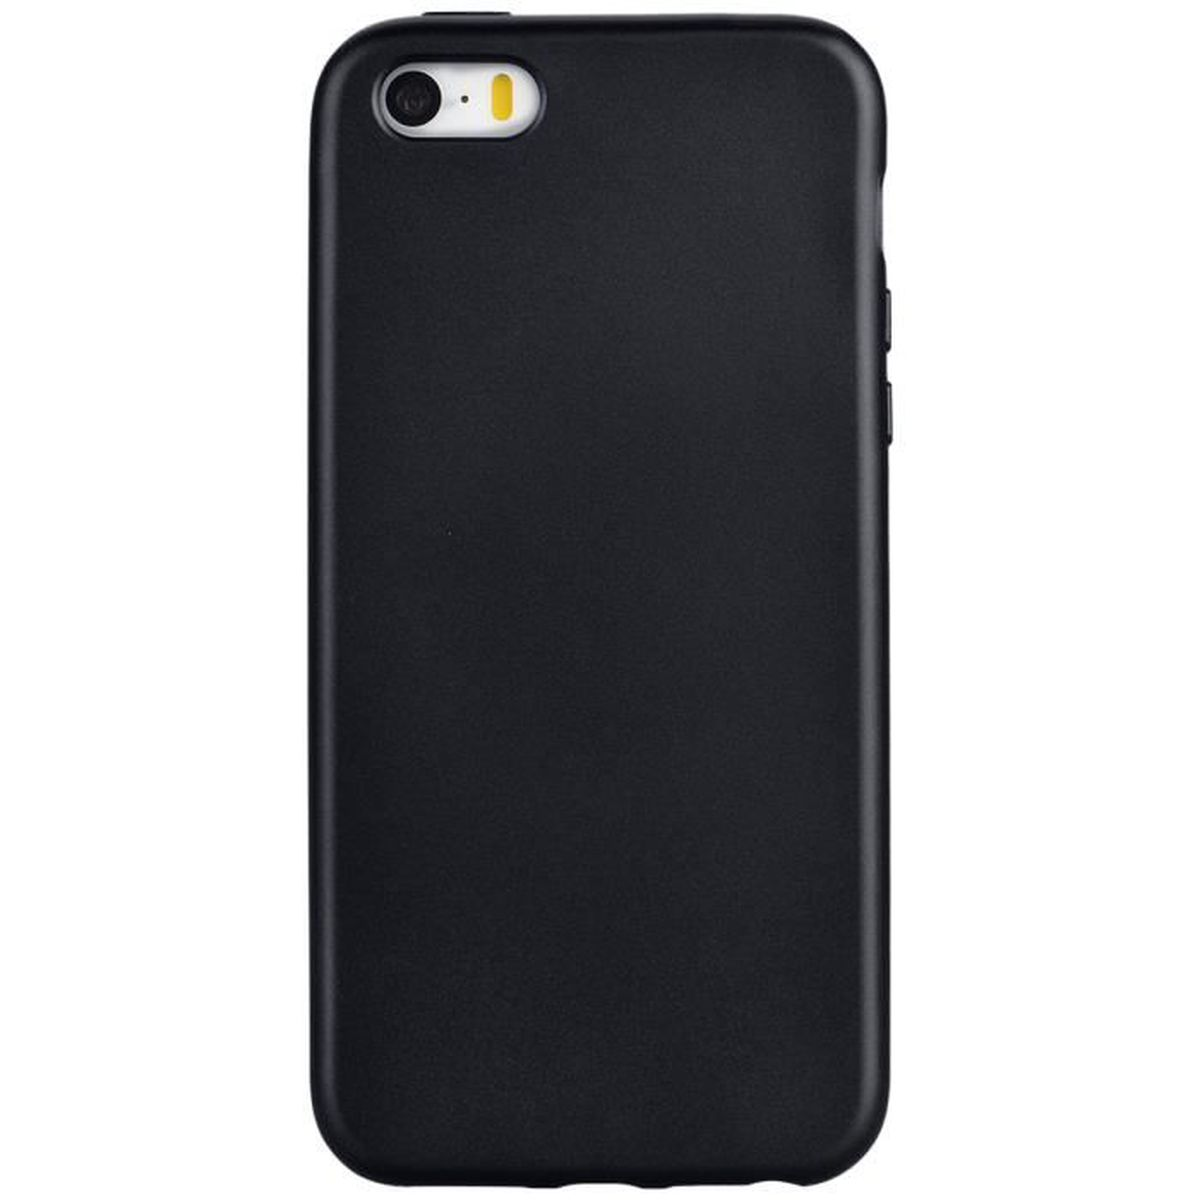 coque iphone 5s noir gel silicone flexible doux ca